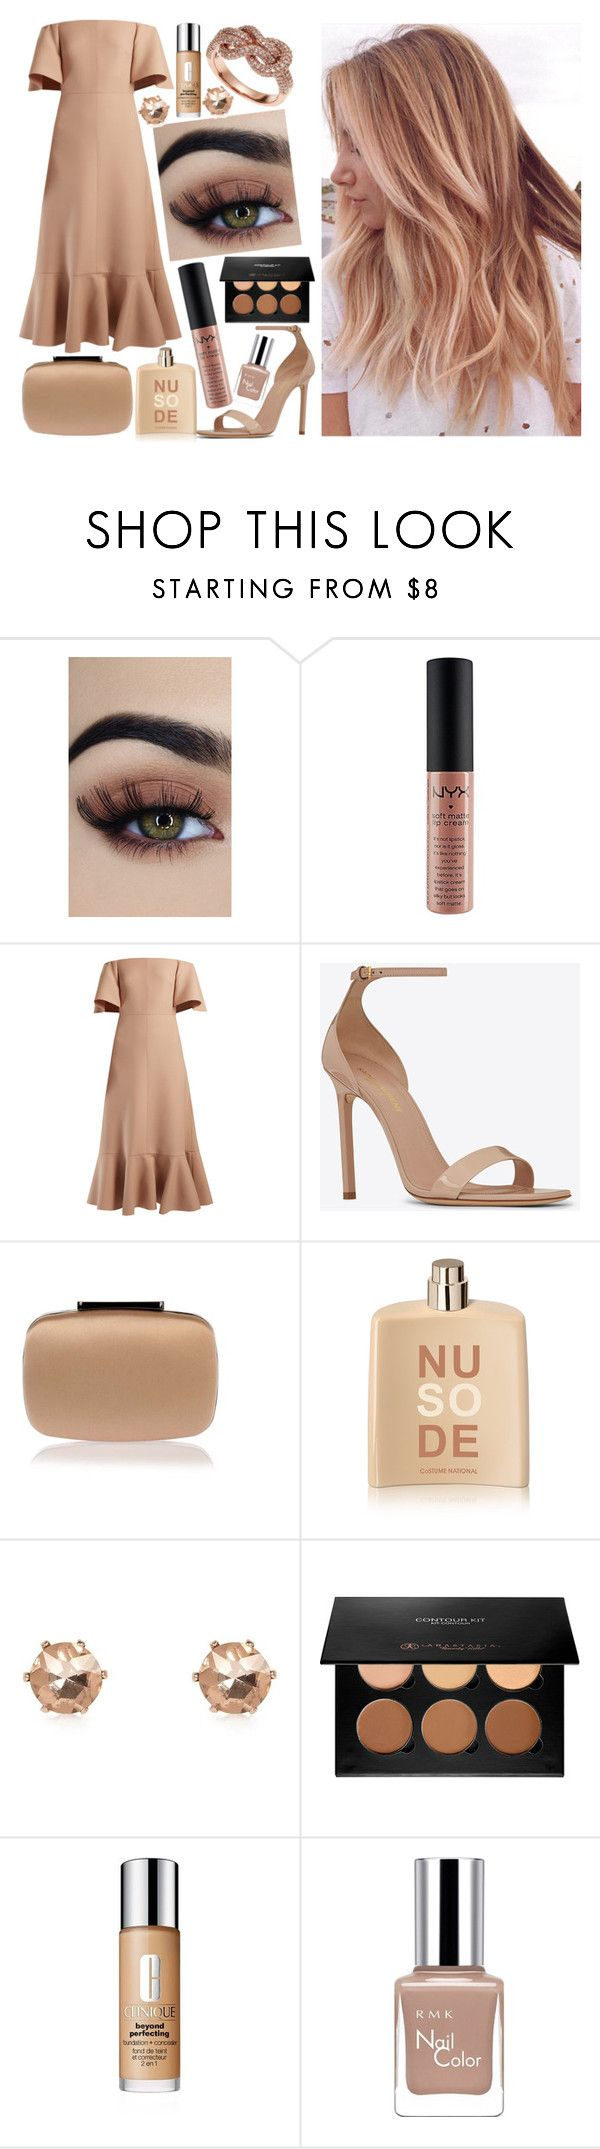 """""""Unbenannt #611"""" by bilge-oytun ❤ liked on Polyvore featuring NYX, Valentino, Yves Saint Laurent, Manolo Blahnik, COSTUME NATIONAL, River Island, Anastasia Beverly Hills, Clinique, RMK and Effy Jewelry"""